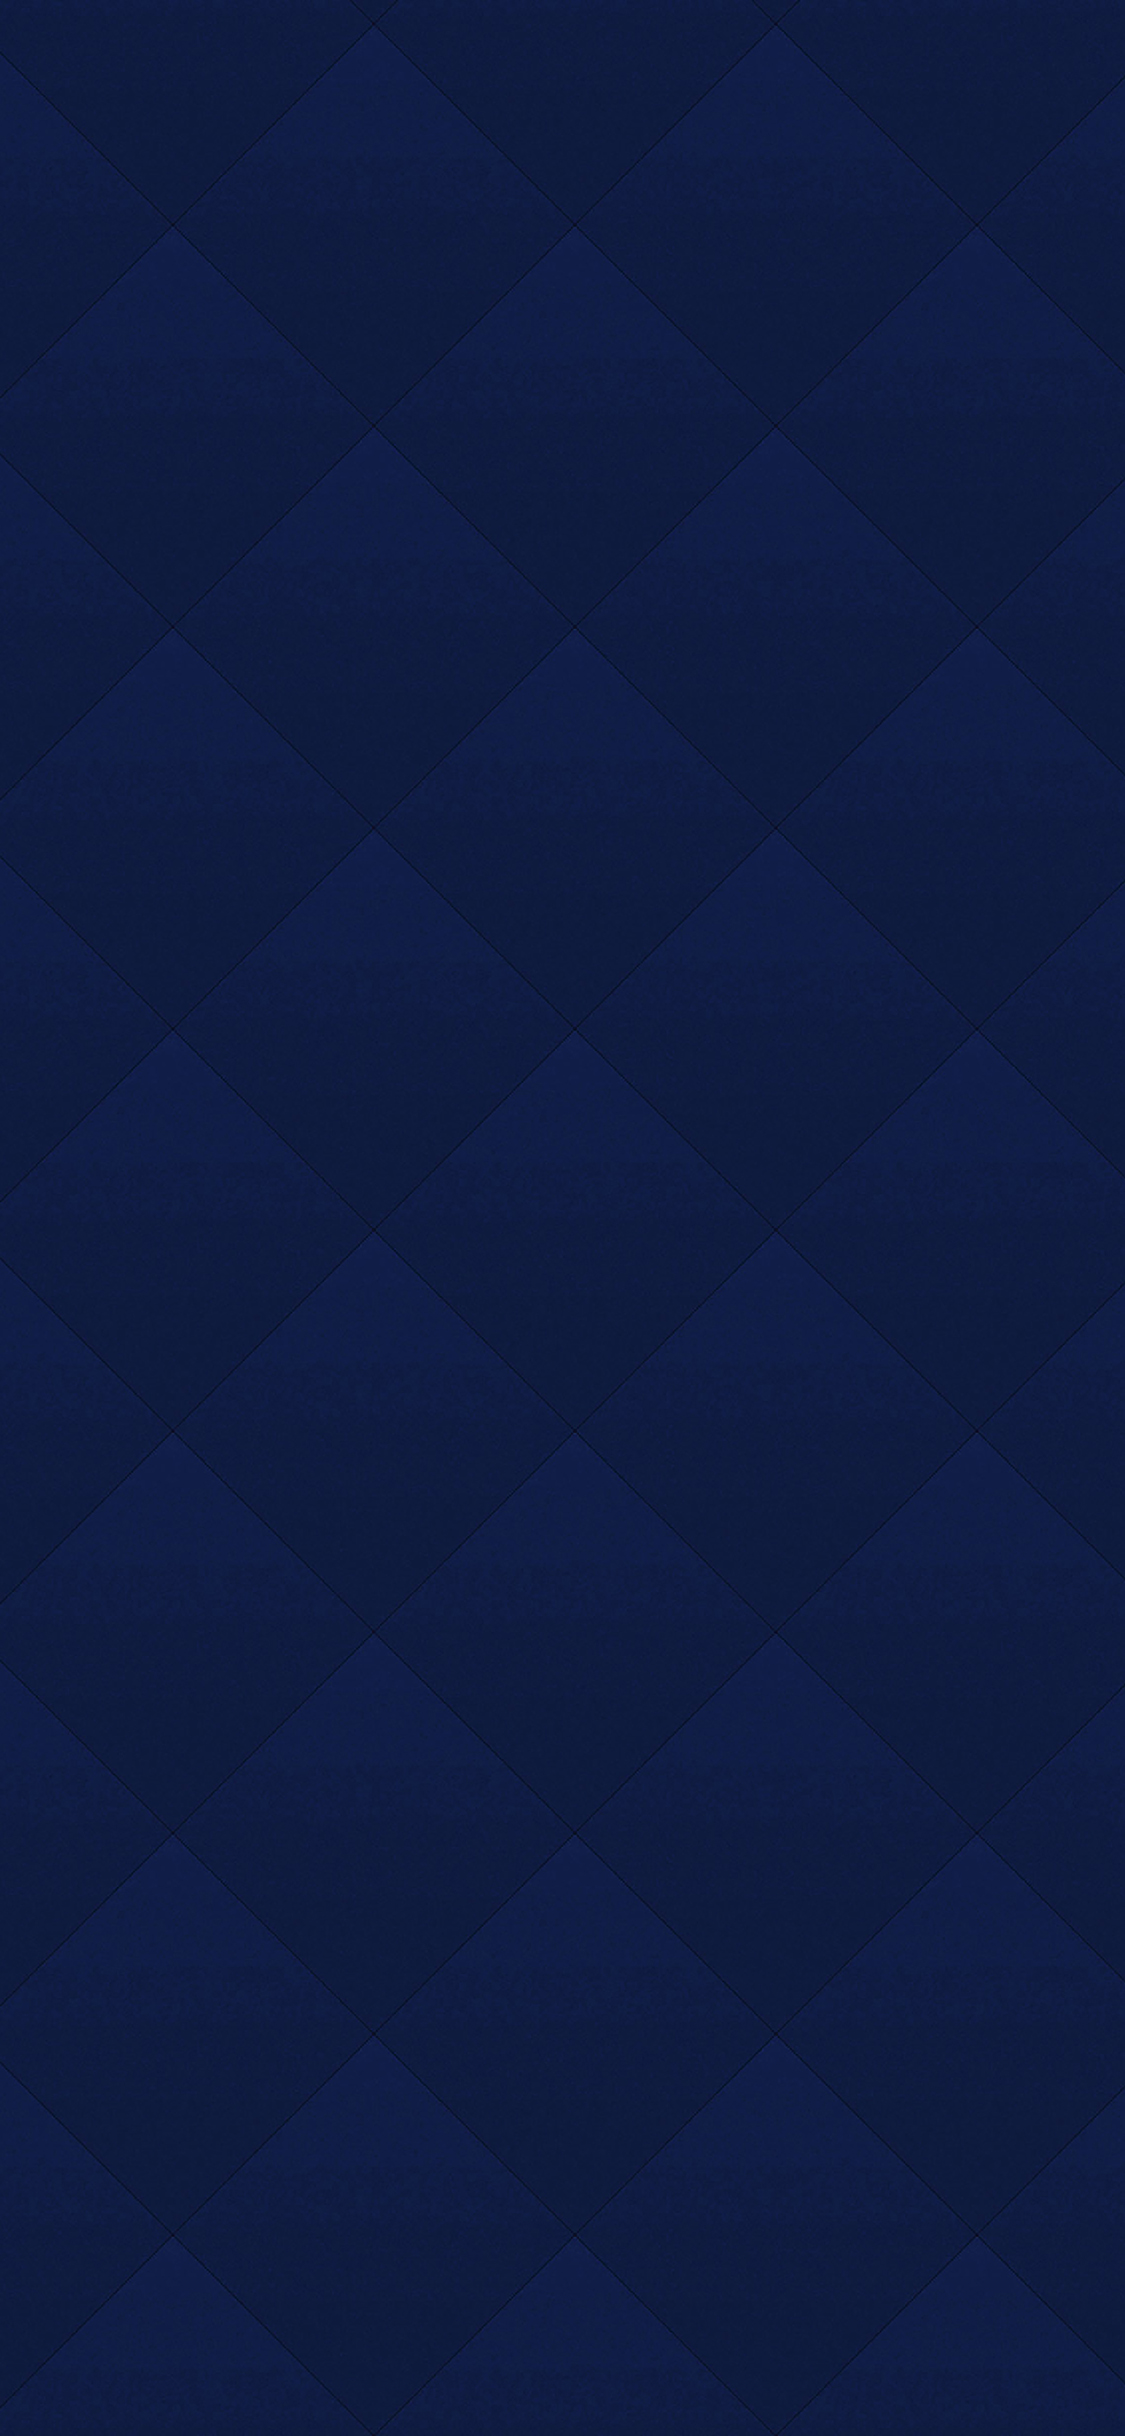 iPhoneXpapers.com-Apple-iPhone-wallpaper-va88-wallpaper-gradient-square-marine-pattern